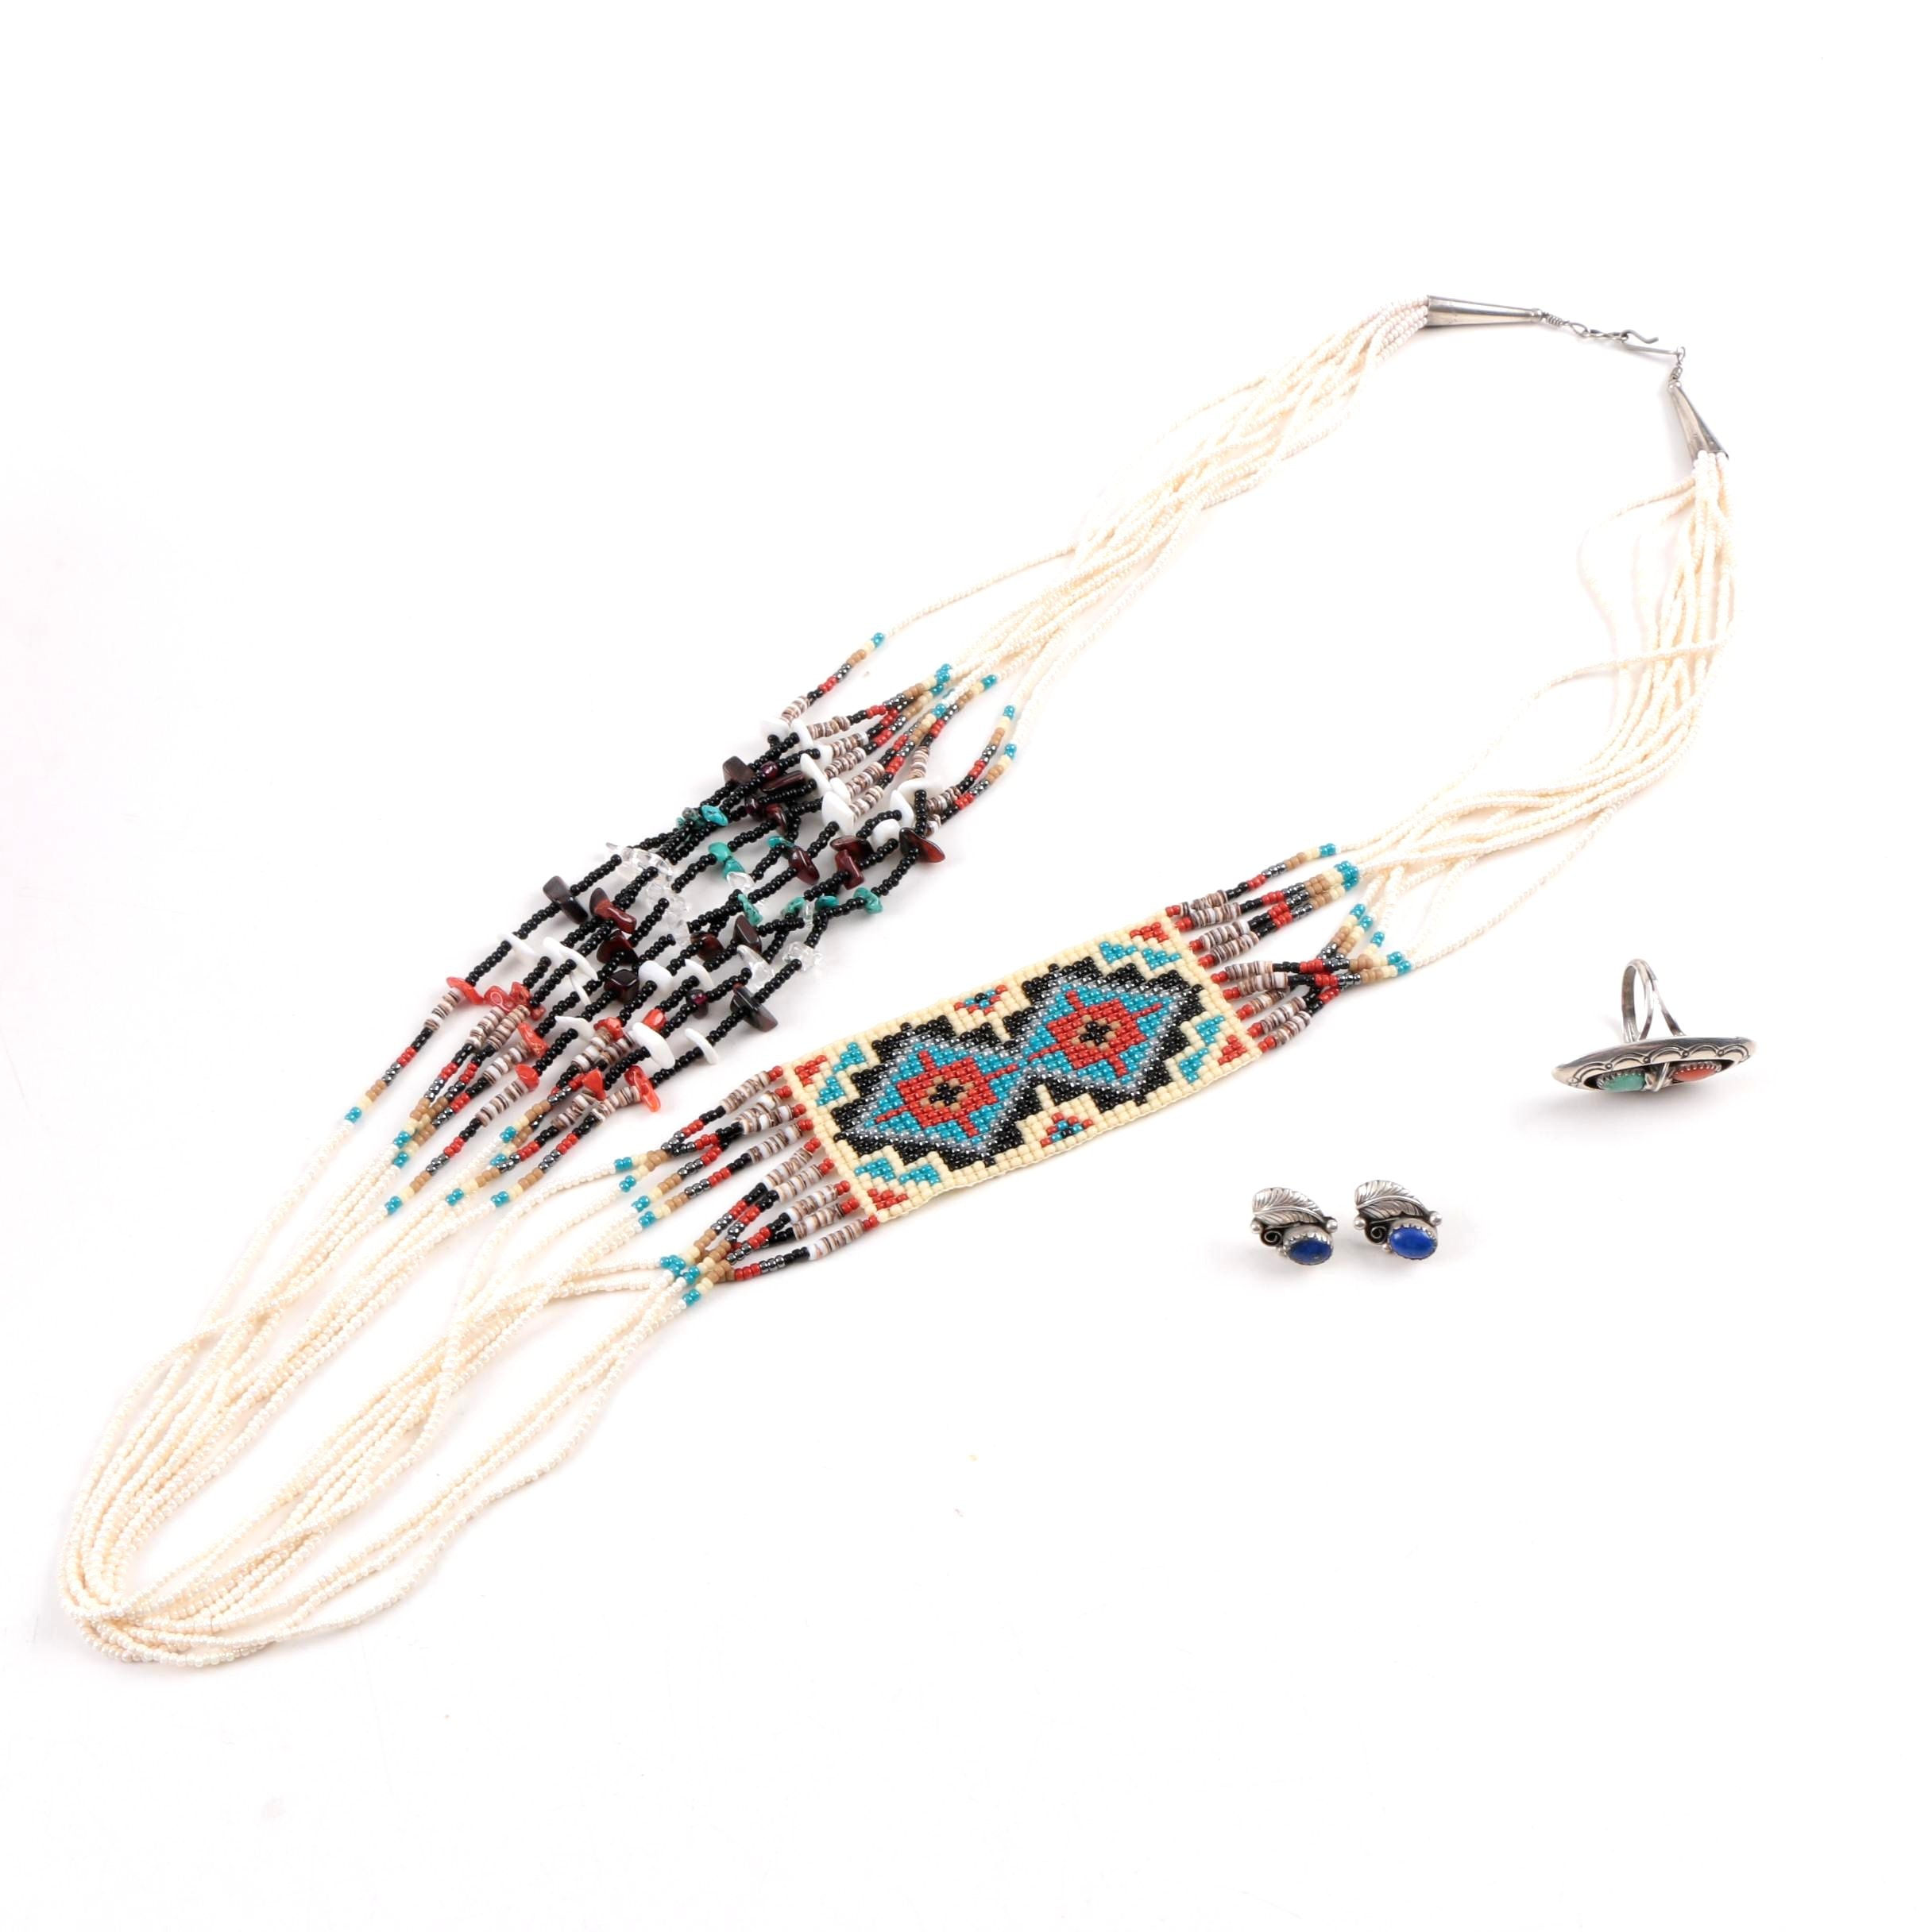 Thomas Tso Sterling Silver Gemstone Navajo Shadowbox Ring, Loomed Heishi Necklace, and Lapis Lazuli Studs